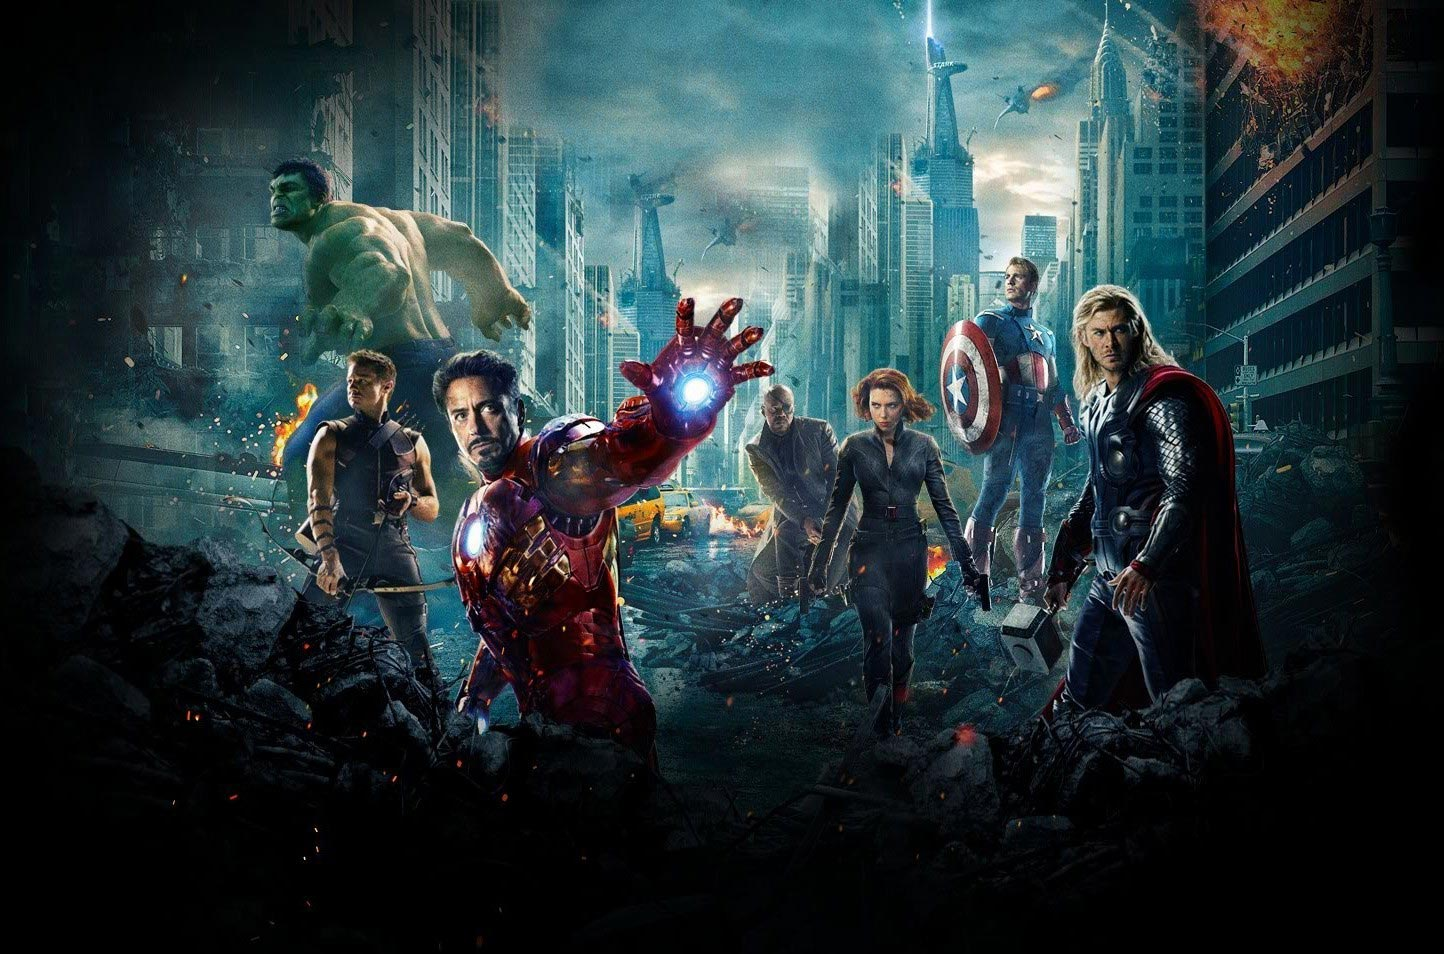 The Avengers | All the action from the casino floor: news, views and more